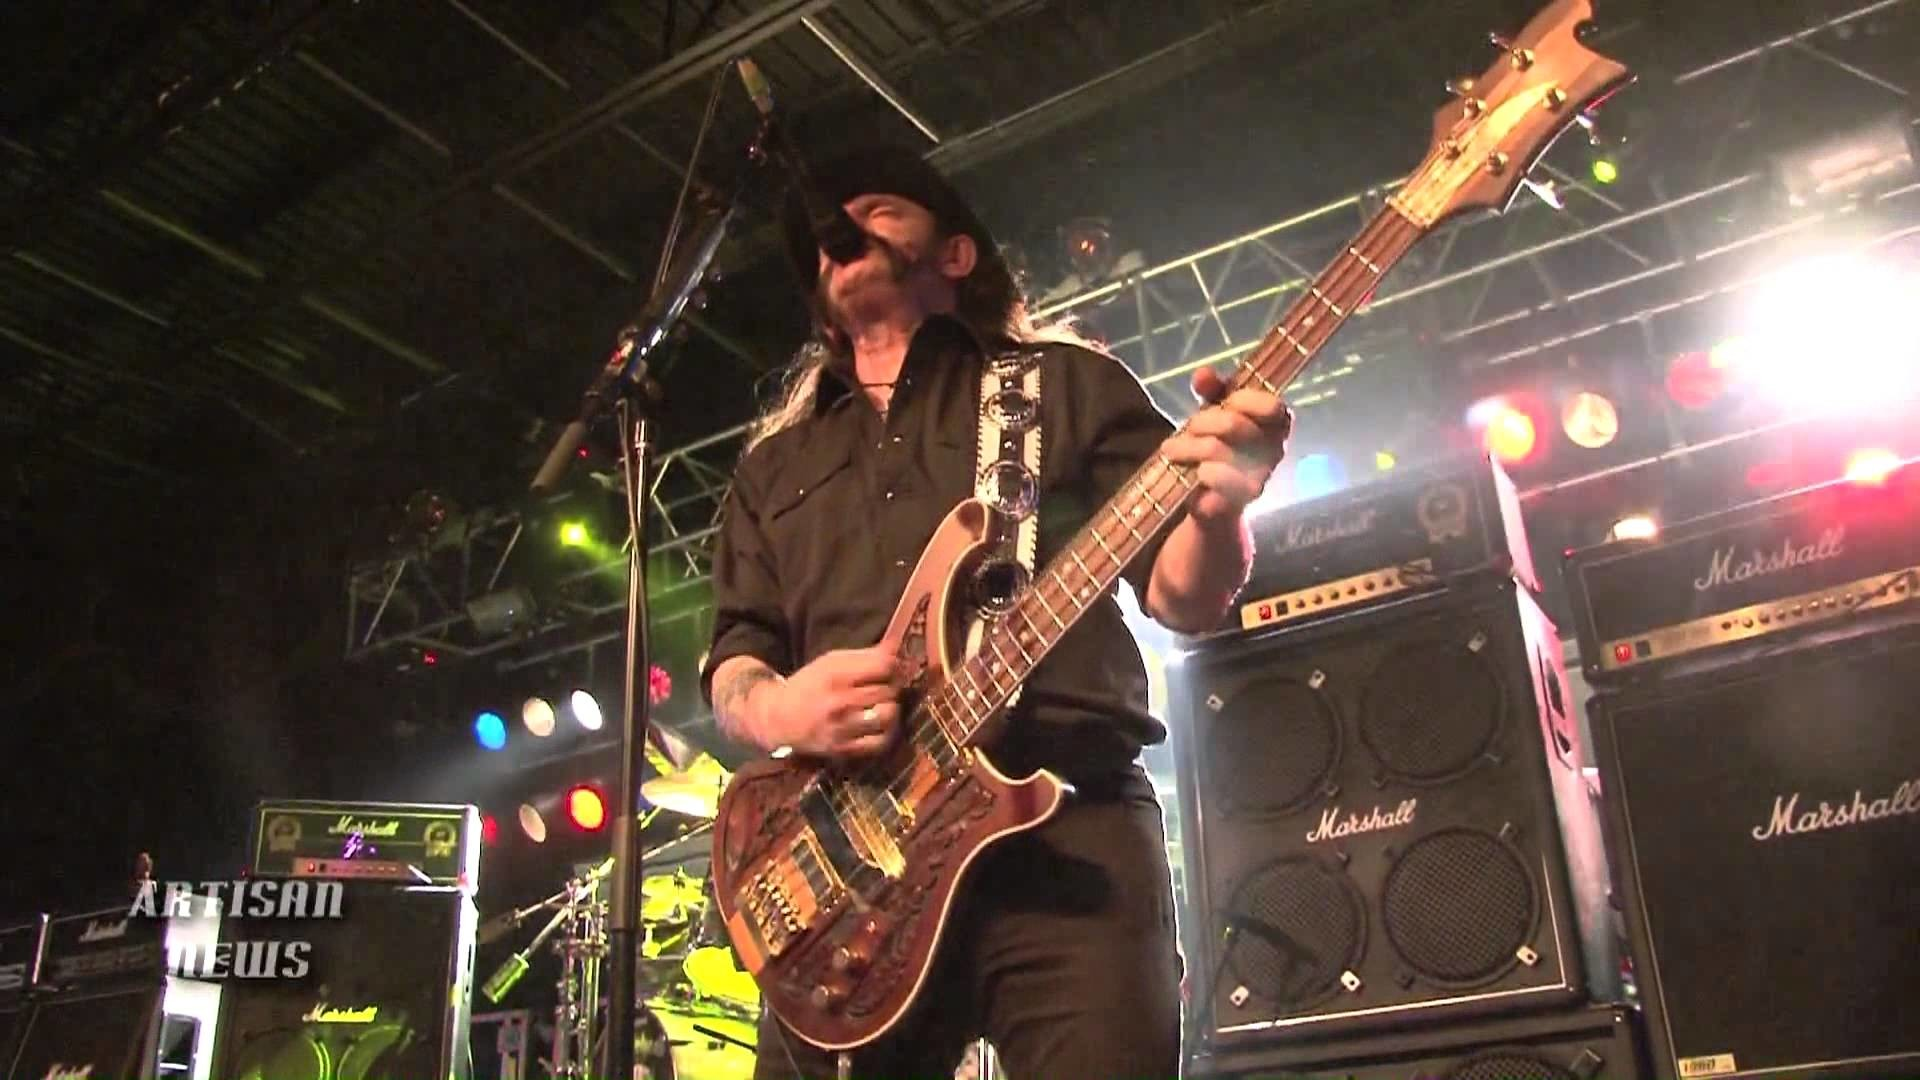 MOTORHEAD LEMMY KILMISTER BATTLING HEMATOMA, HEART ISSUES – YouTube